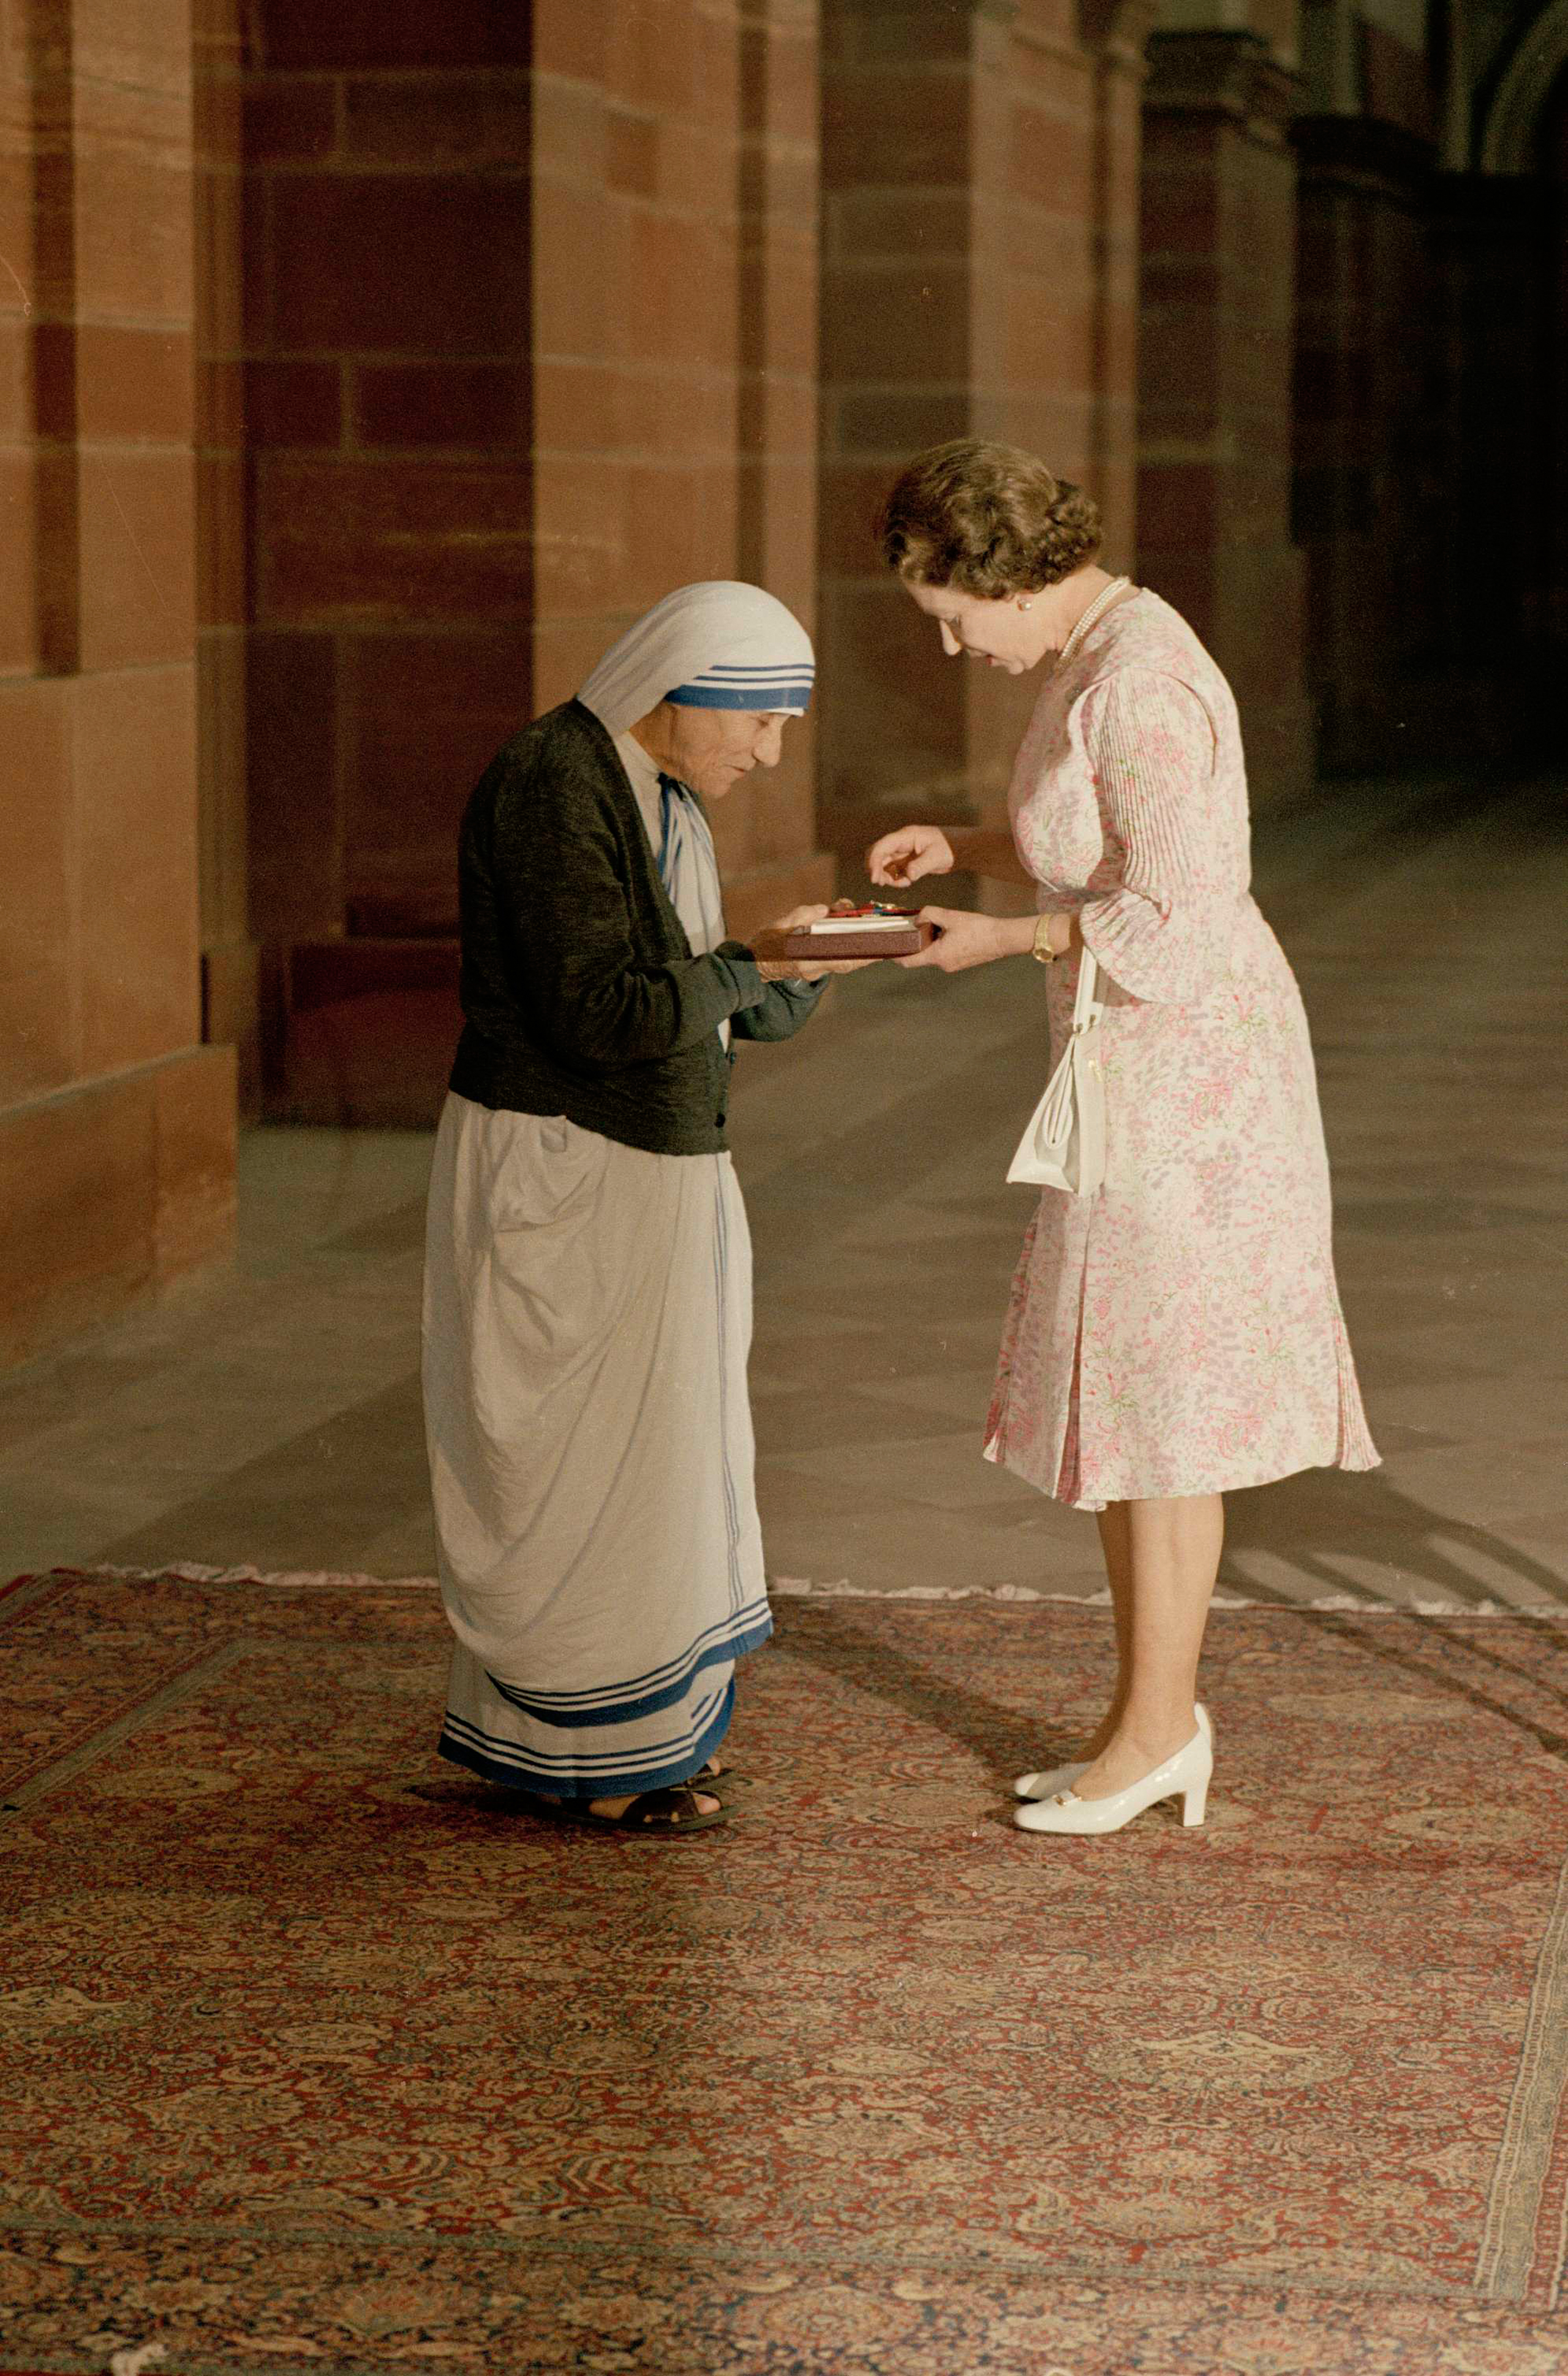 Queen Elizabeth II and Mother Teresa look at the Insignia of the Honorary Order of Merit, which she just presented to the Lady of Calcutta, at the Rashtrapati Shavar in New Delhi, India, on Nov. 24, 1983.